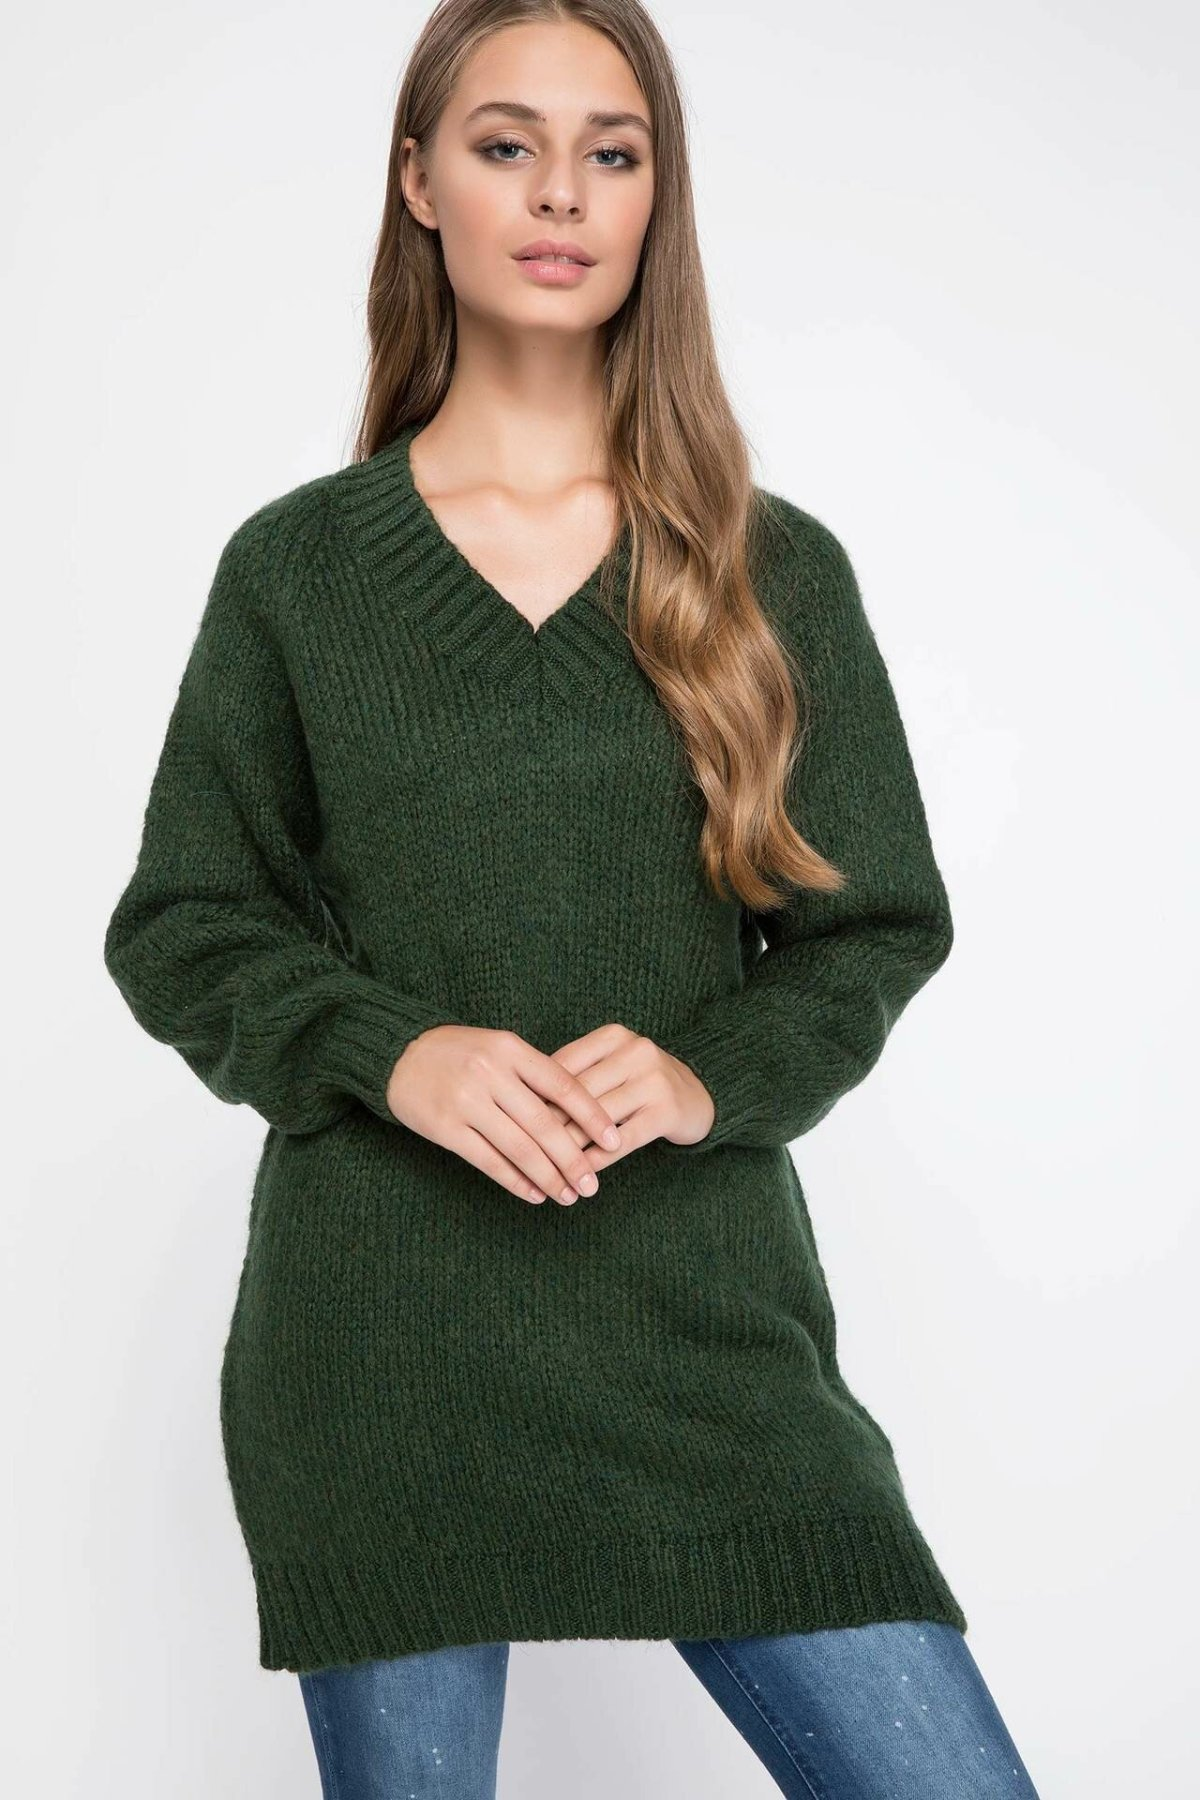 DeFacto Women Fashion Solid V-neck Long Pullovers Female Knitted Pullover Simple Knitted Casual Comfort Hoodies Top-I8870AZ18AU